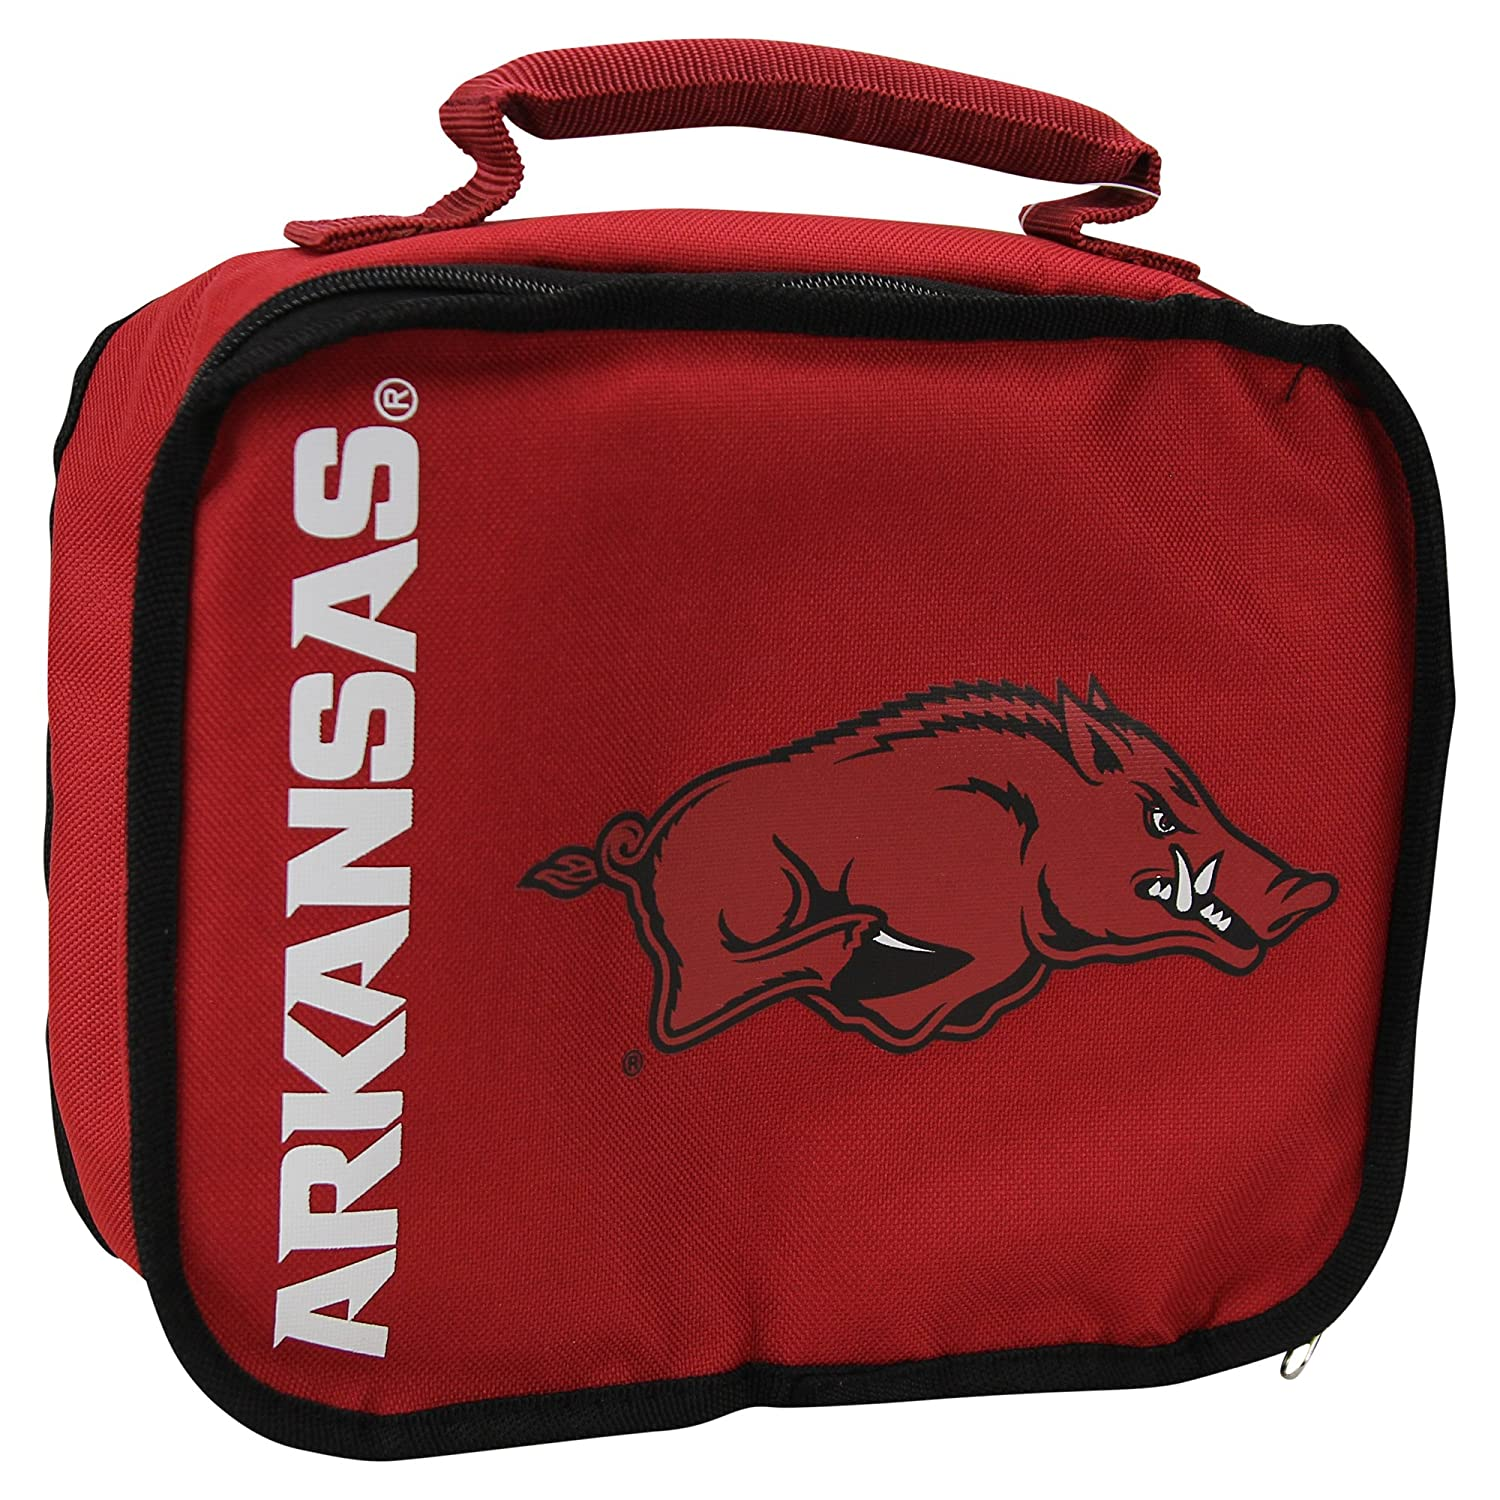 Arkansas Razorbacks The Northwest Company NCAA Team Logo Sacked Lunch Box